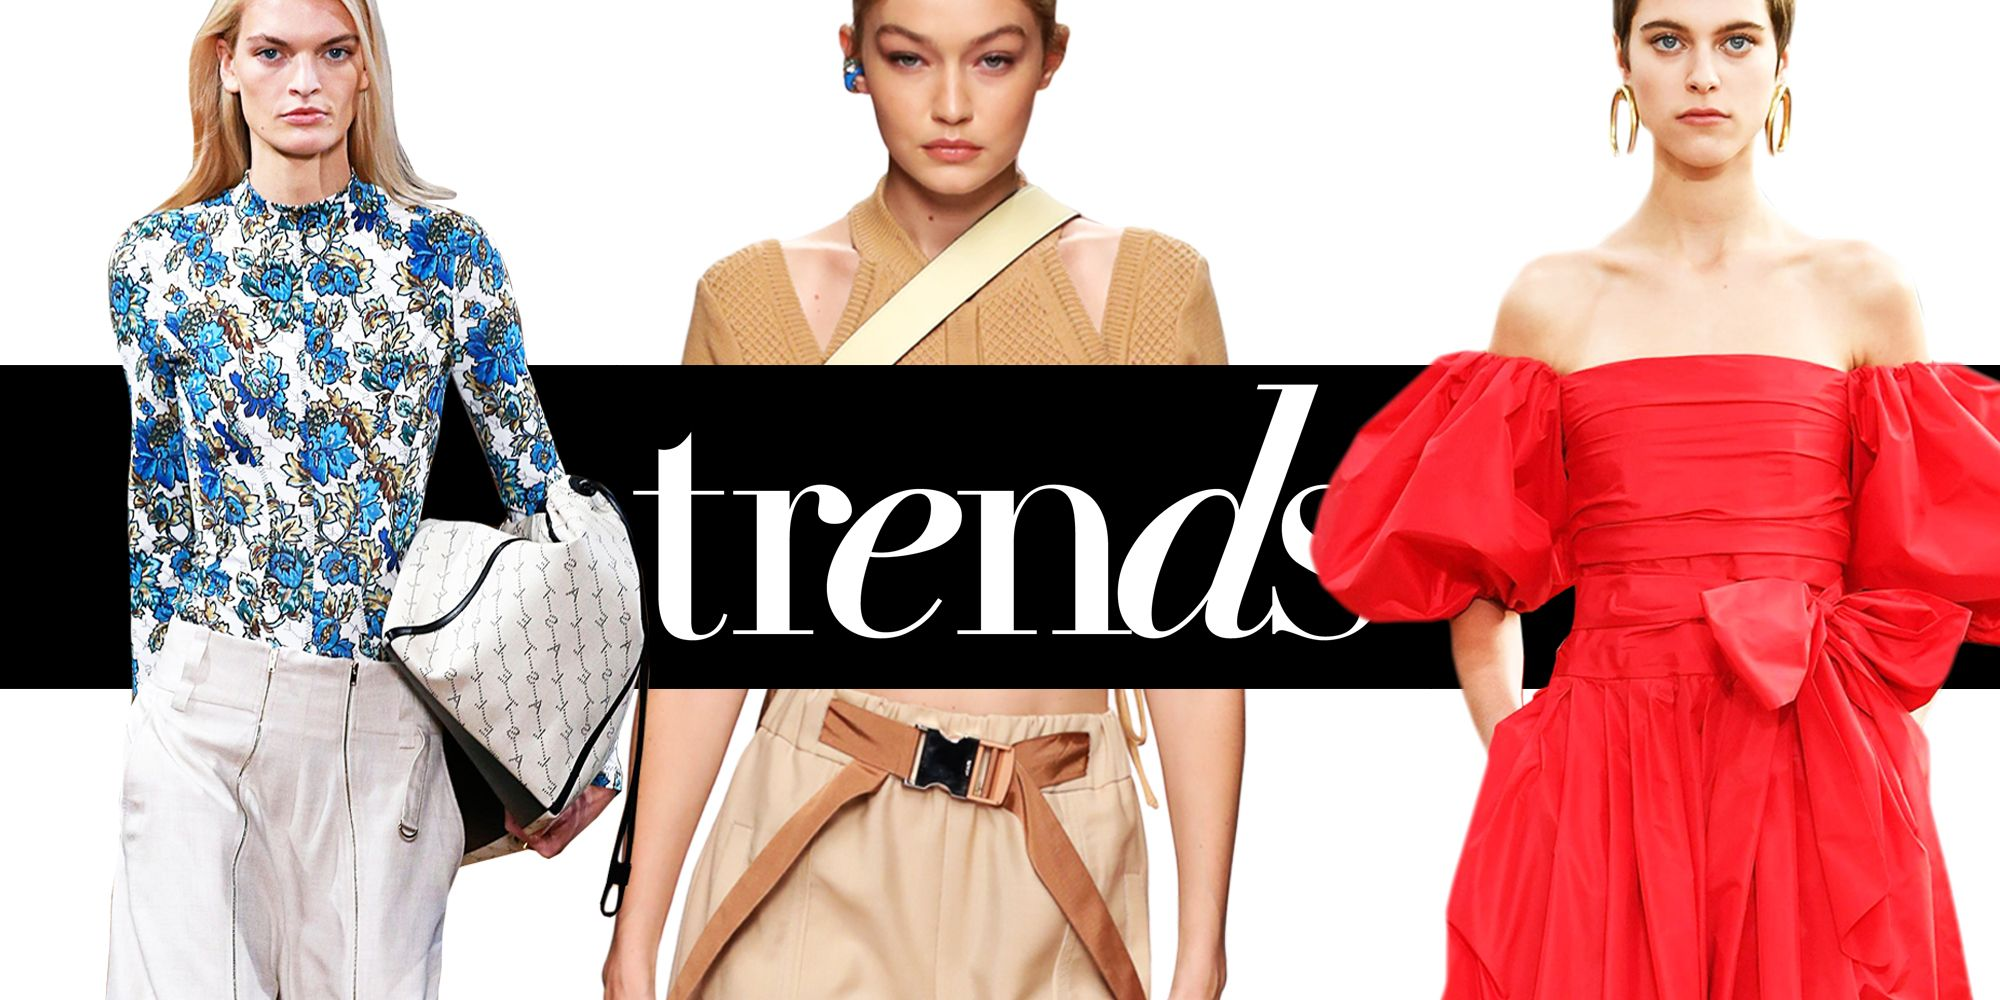 Spring summer fashion trends for 2019 - Top style trends for